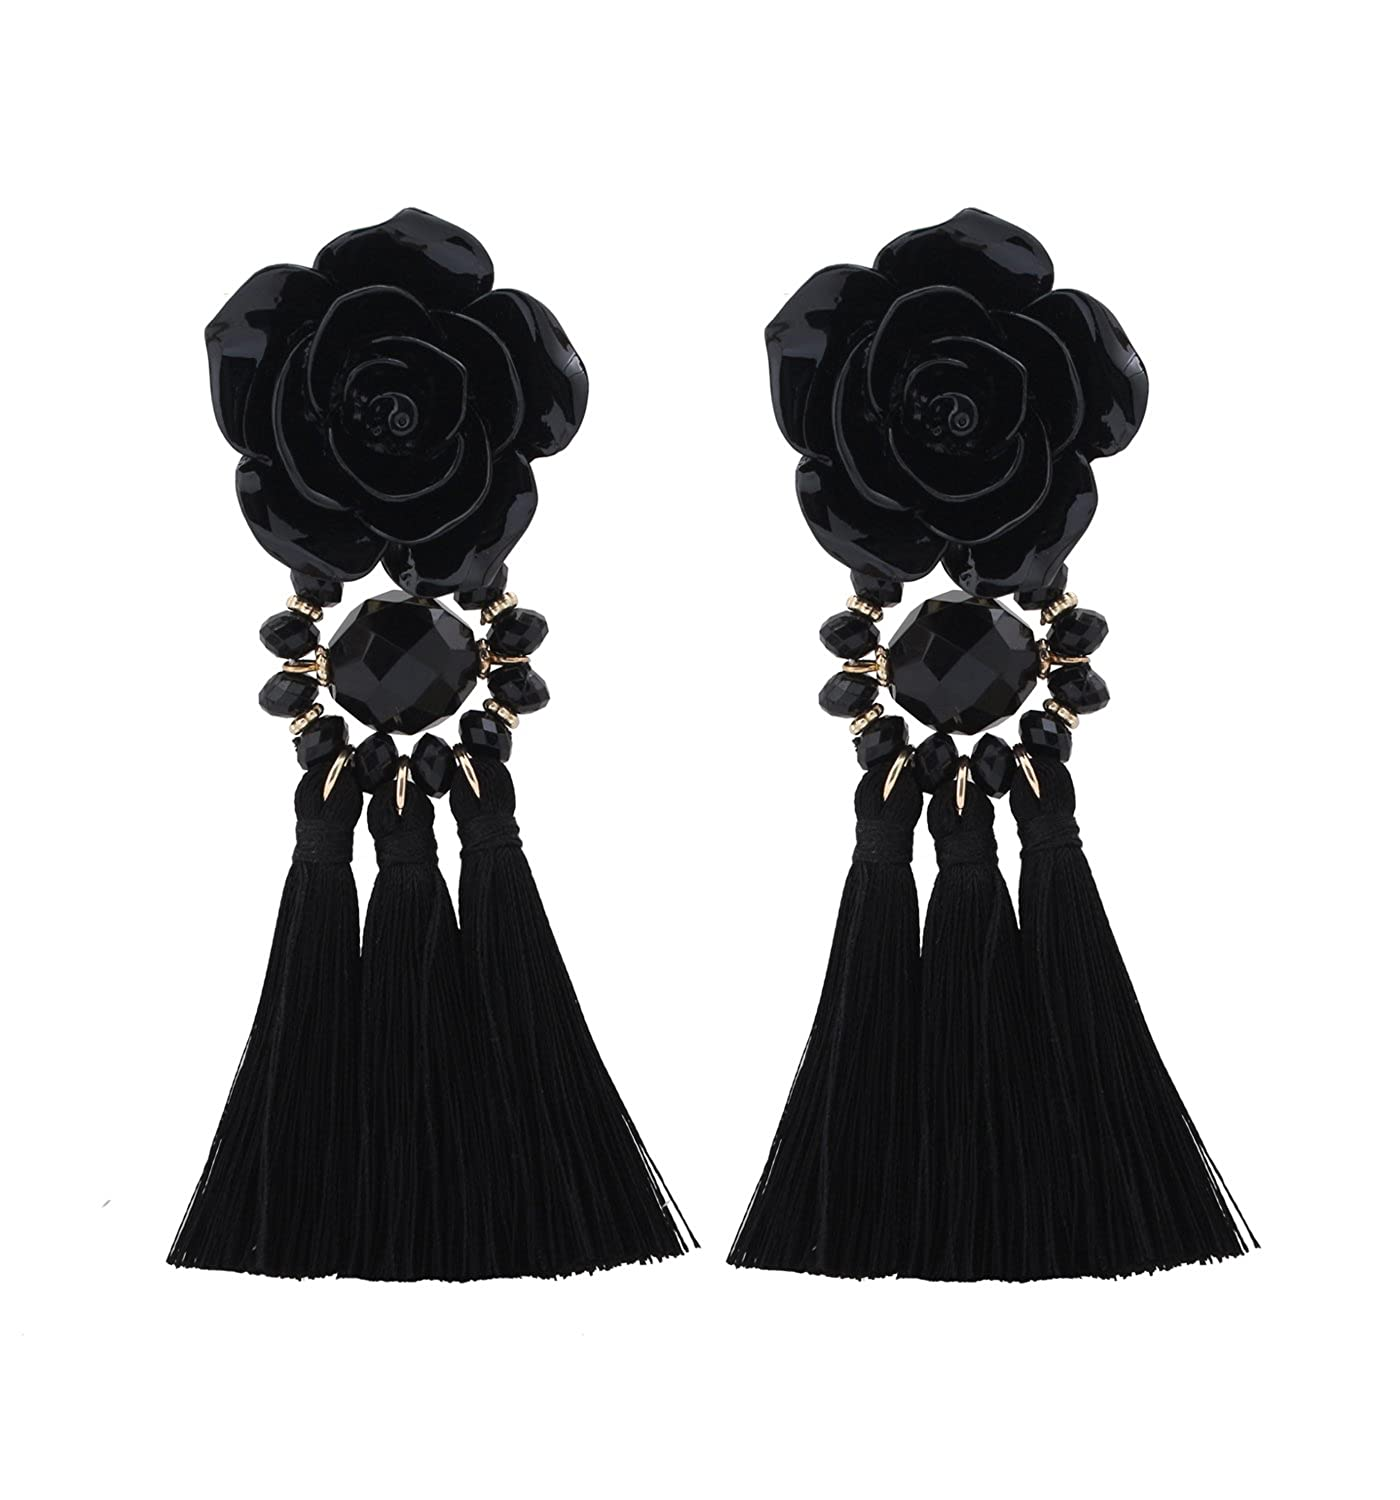 spade flower zi new big york sequin p stud earrings kate dillards black